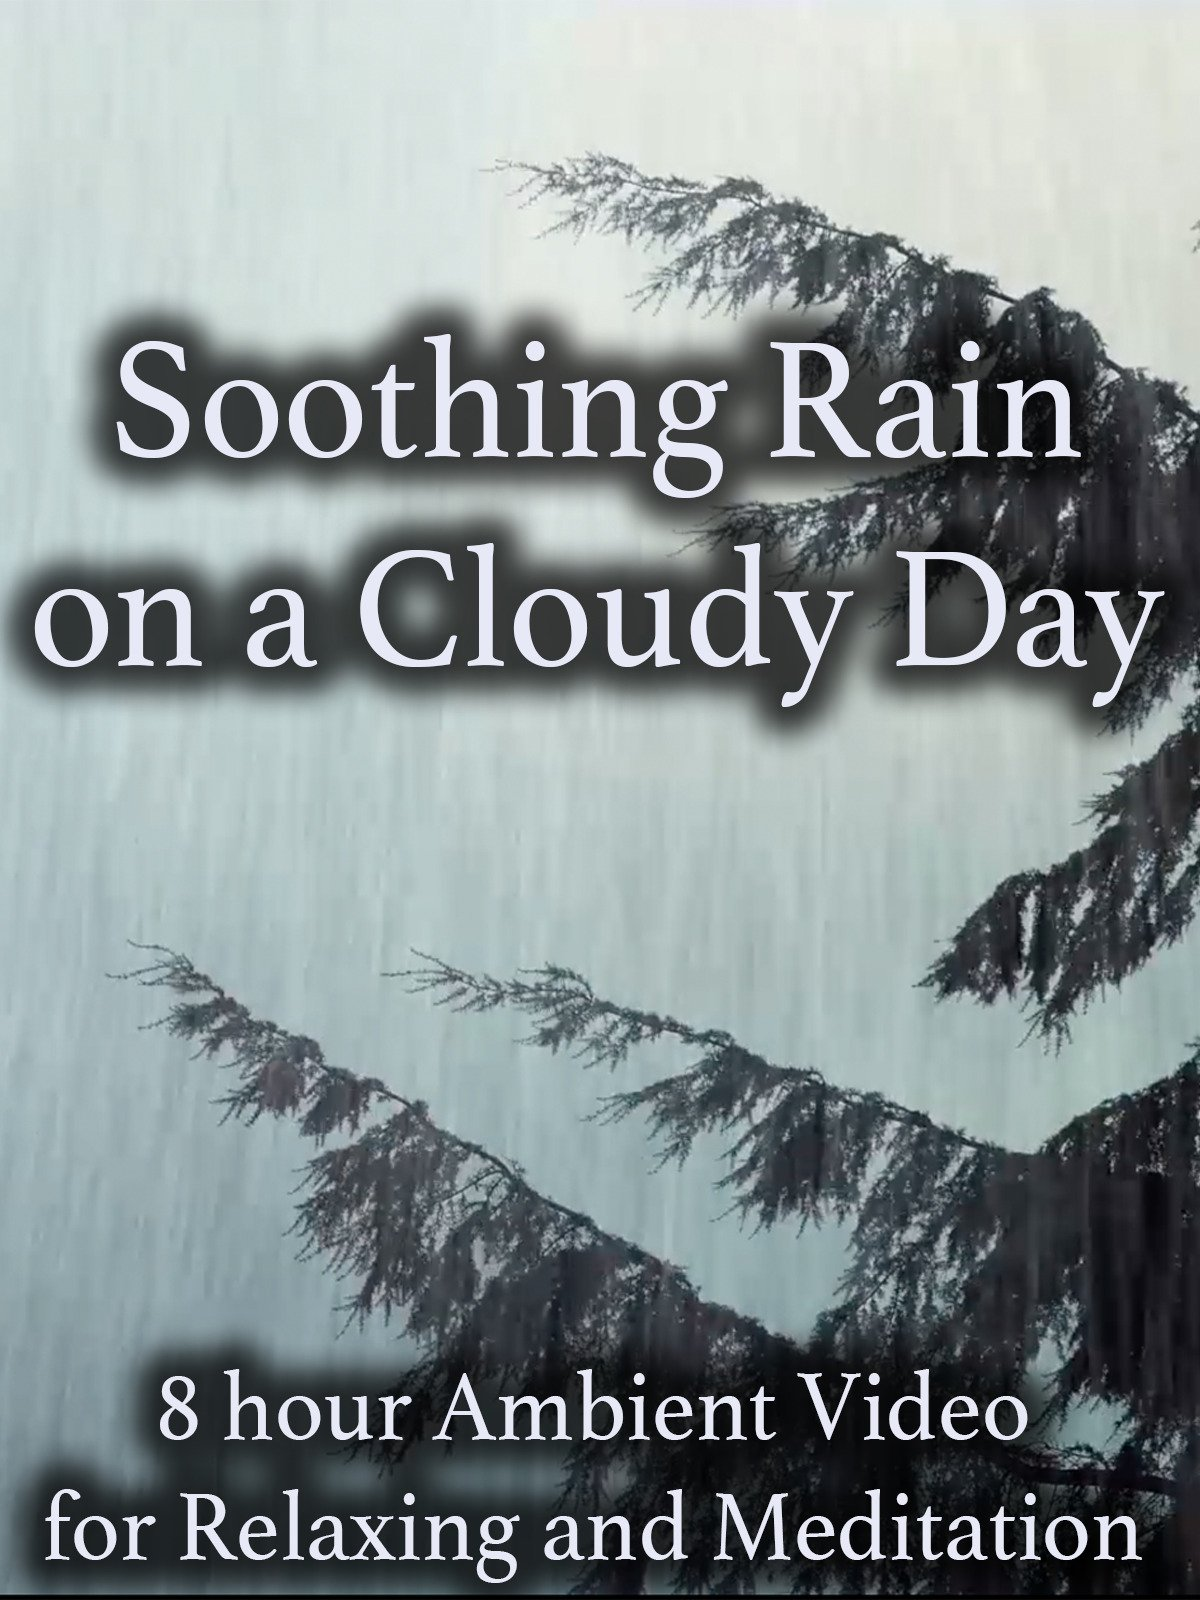 Soothing Rain on a Cloudy Day 8 Hour Ambient Video for Relaxing and Meditation